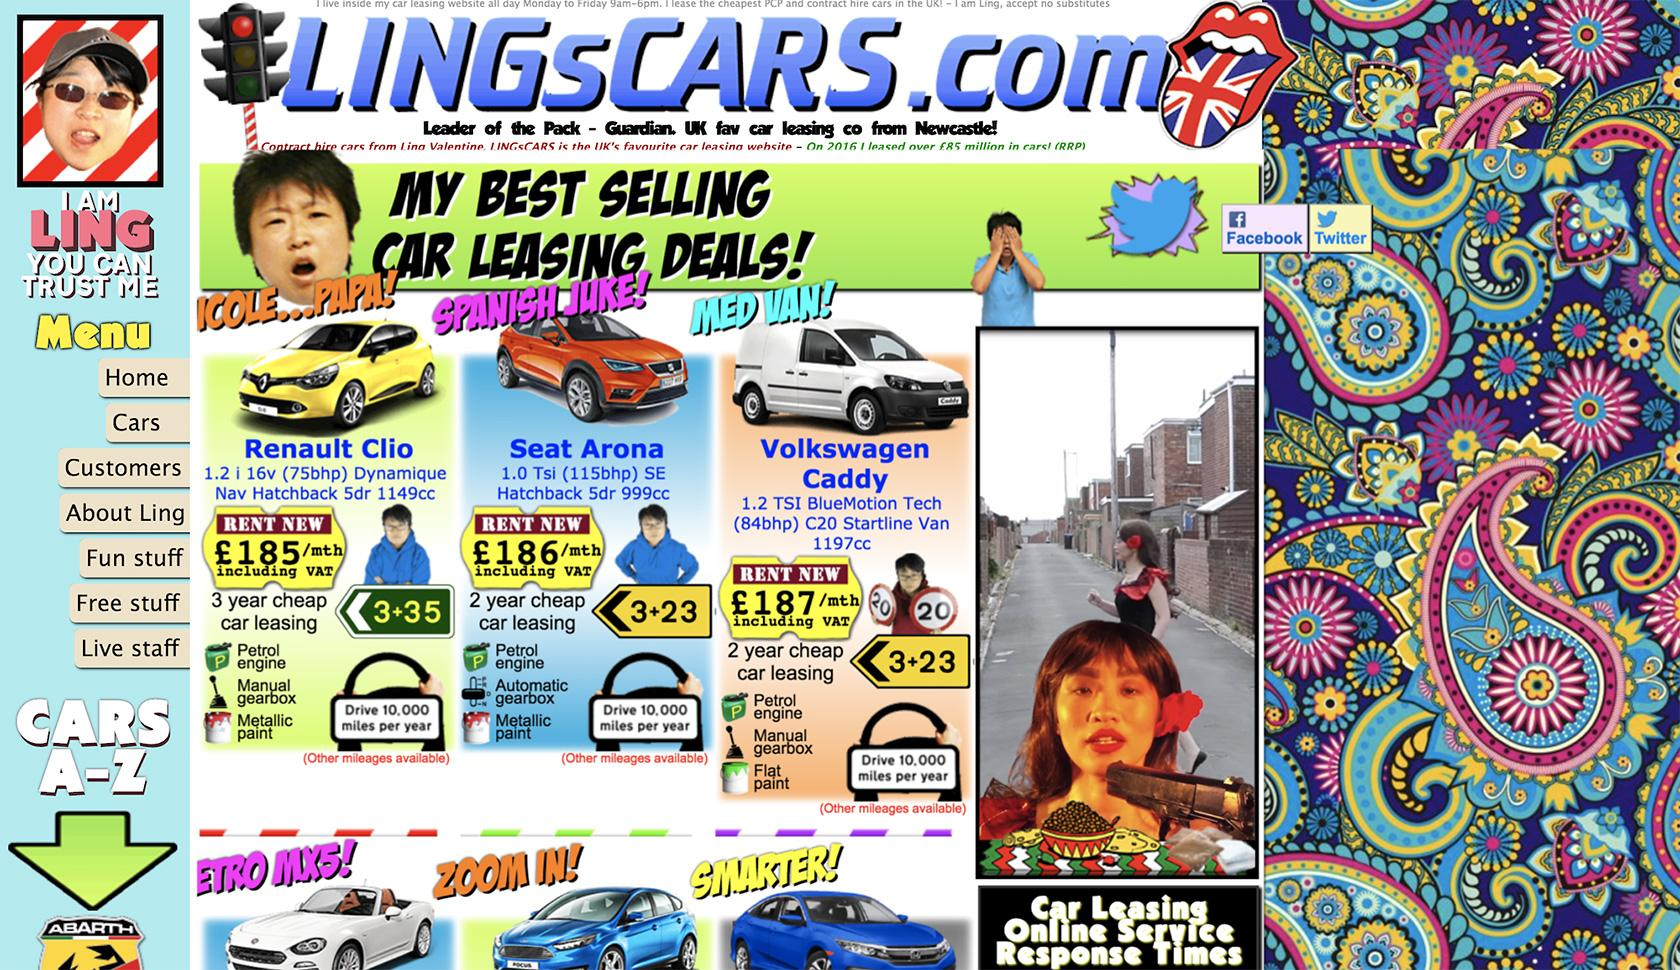 lings cars overwhelms the user with stimuli